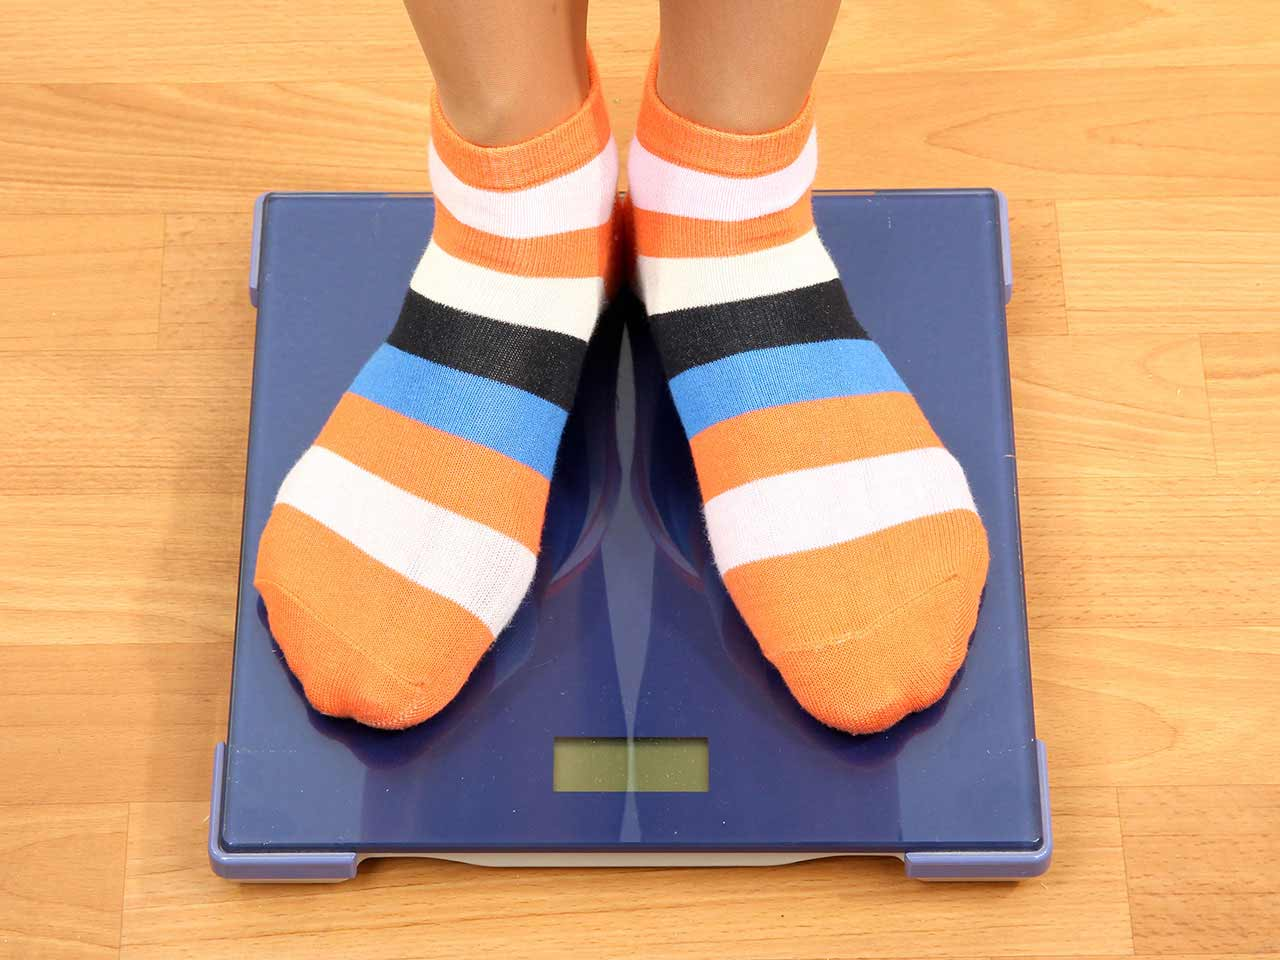 Person standing on bathroom scales in stripy socks